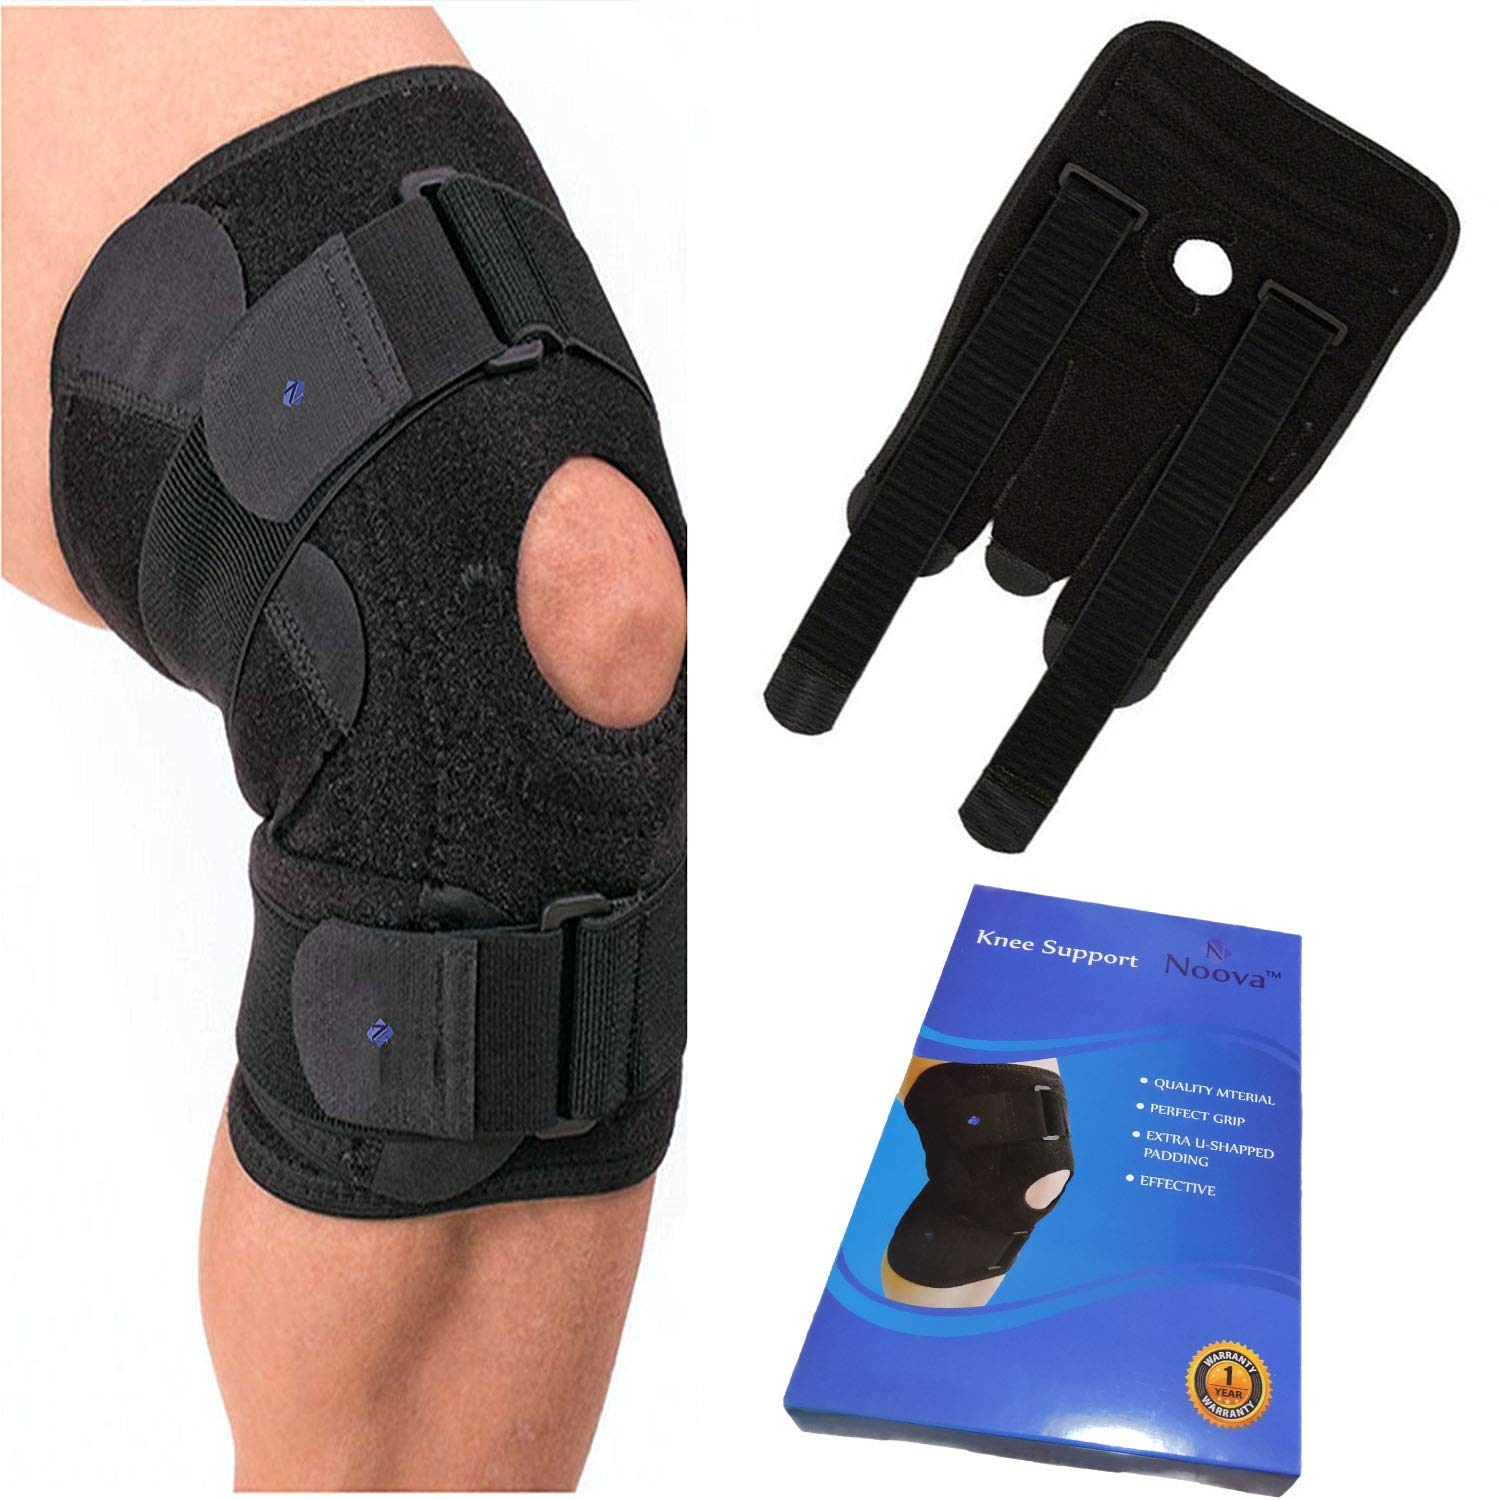 Noova Knee Caps for Women and Men -Neoprene Knee Support for Knee Pain Relief, Adjustable Knee Brace for Gym, Running, Sports,Knee Wraps for Daily Use - Free Size- 1 Piece (Black) product image